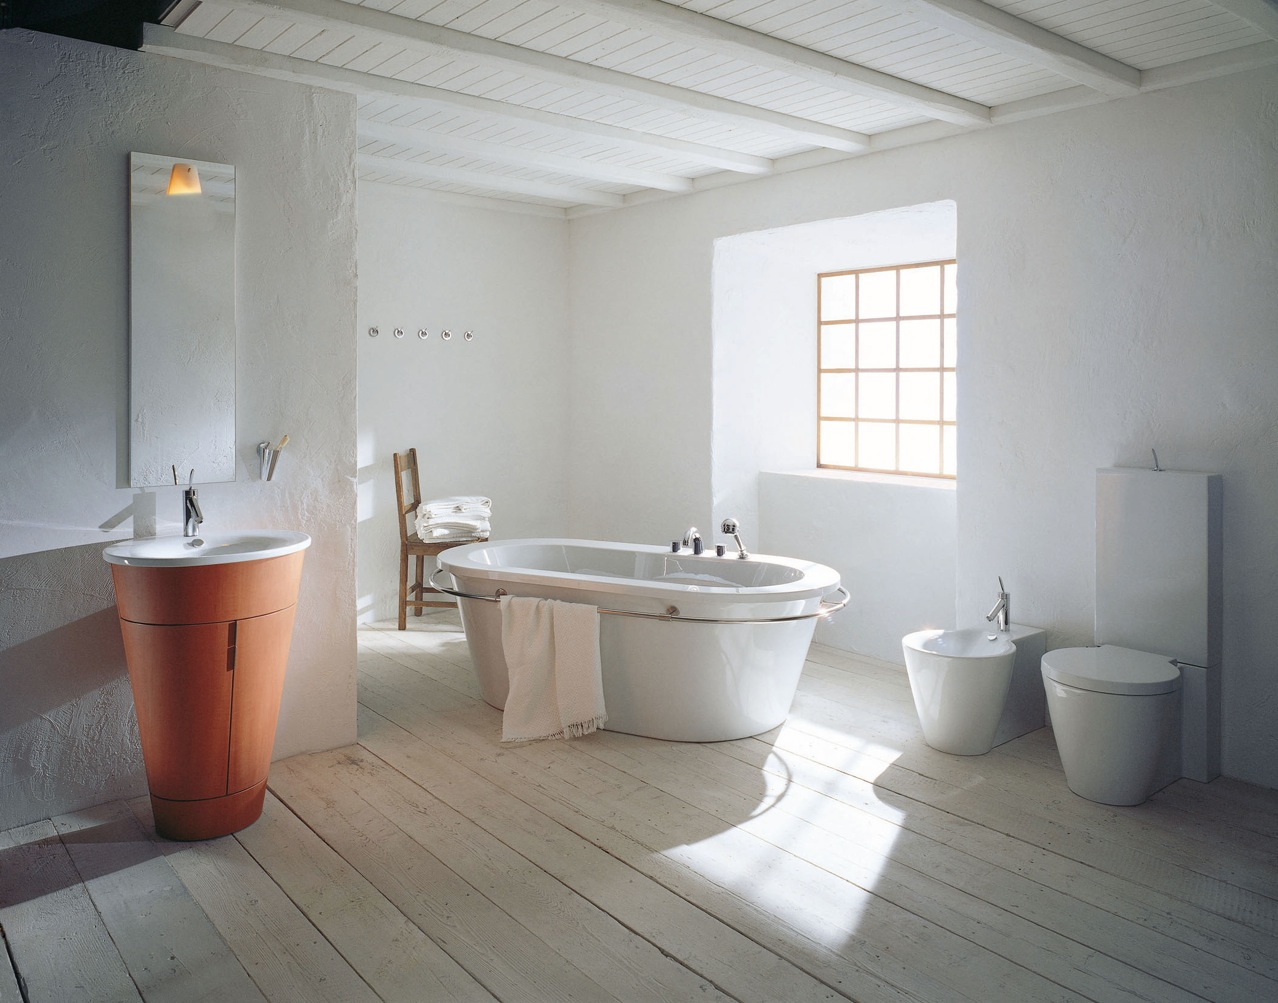 Philipe starck rustic modern bathroom decor - Modern bathroom decorating ideas ...